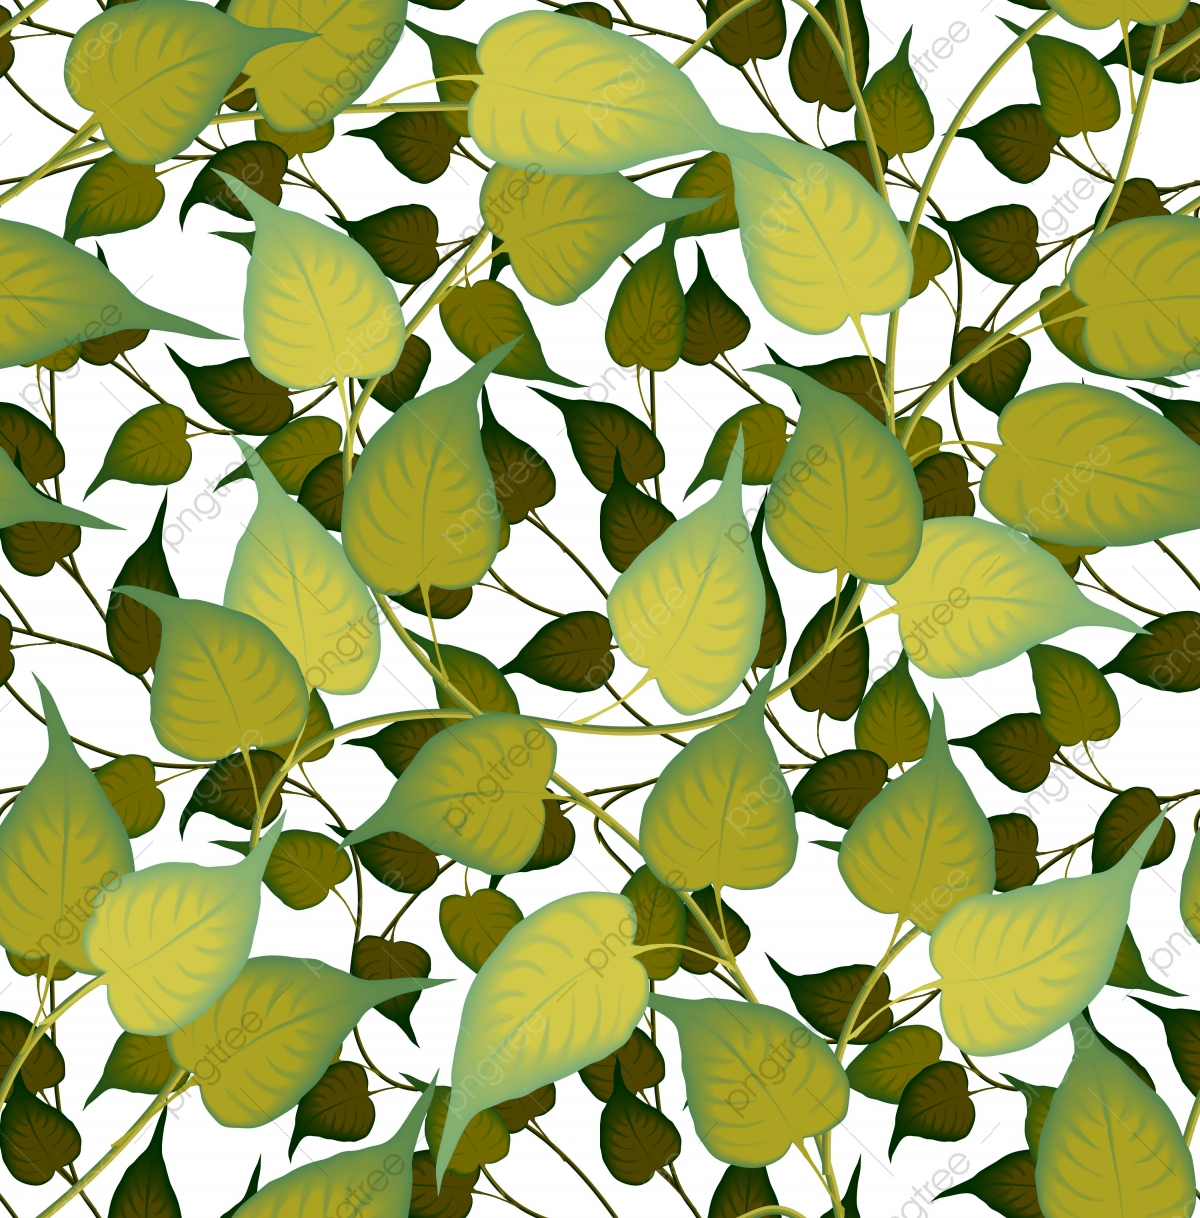 Classic Unique Seamless Foliage Pattern Design Leaf Green Leaves Png And Vector With Transparent Background For Free Download